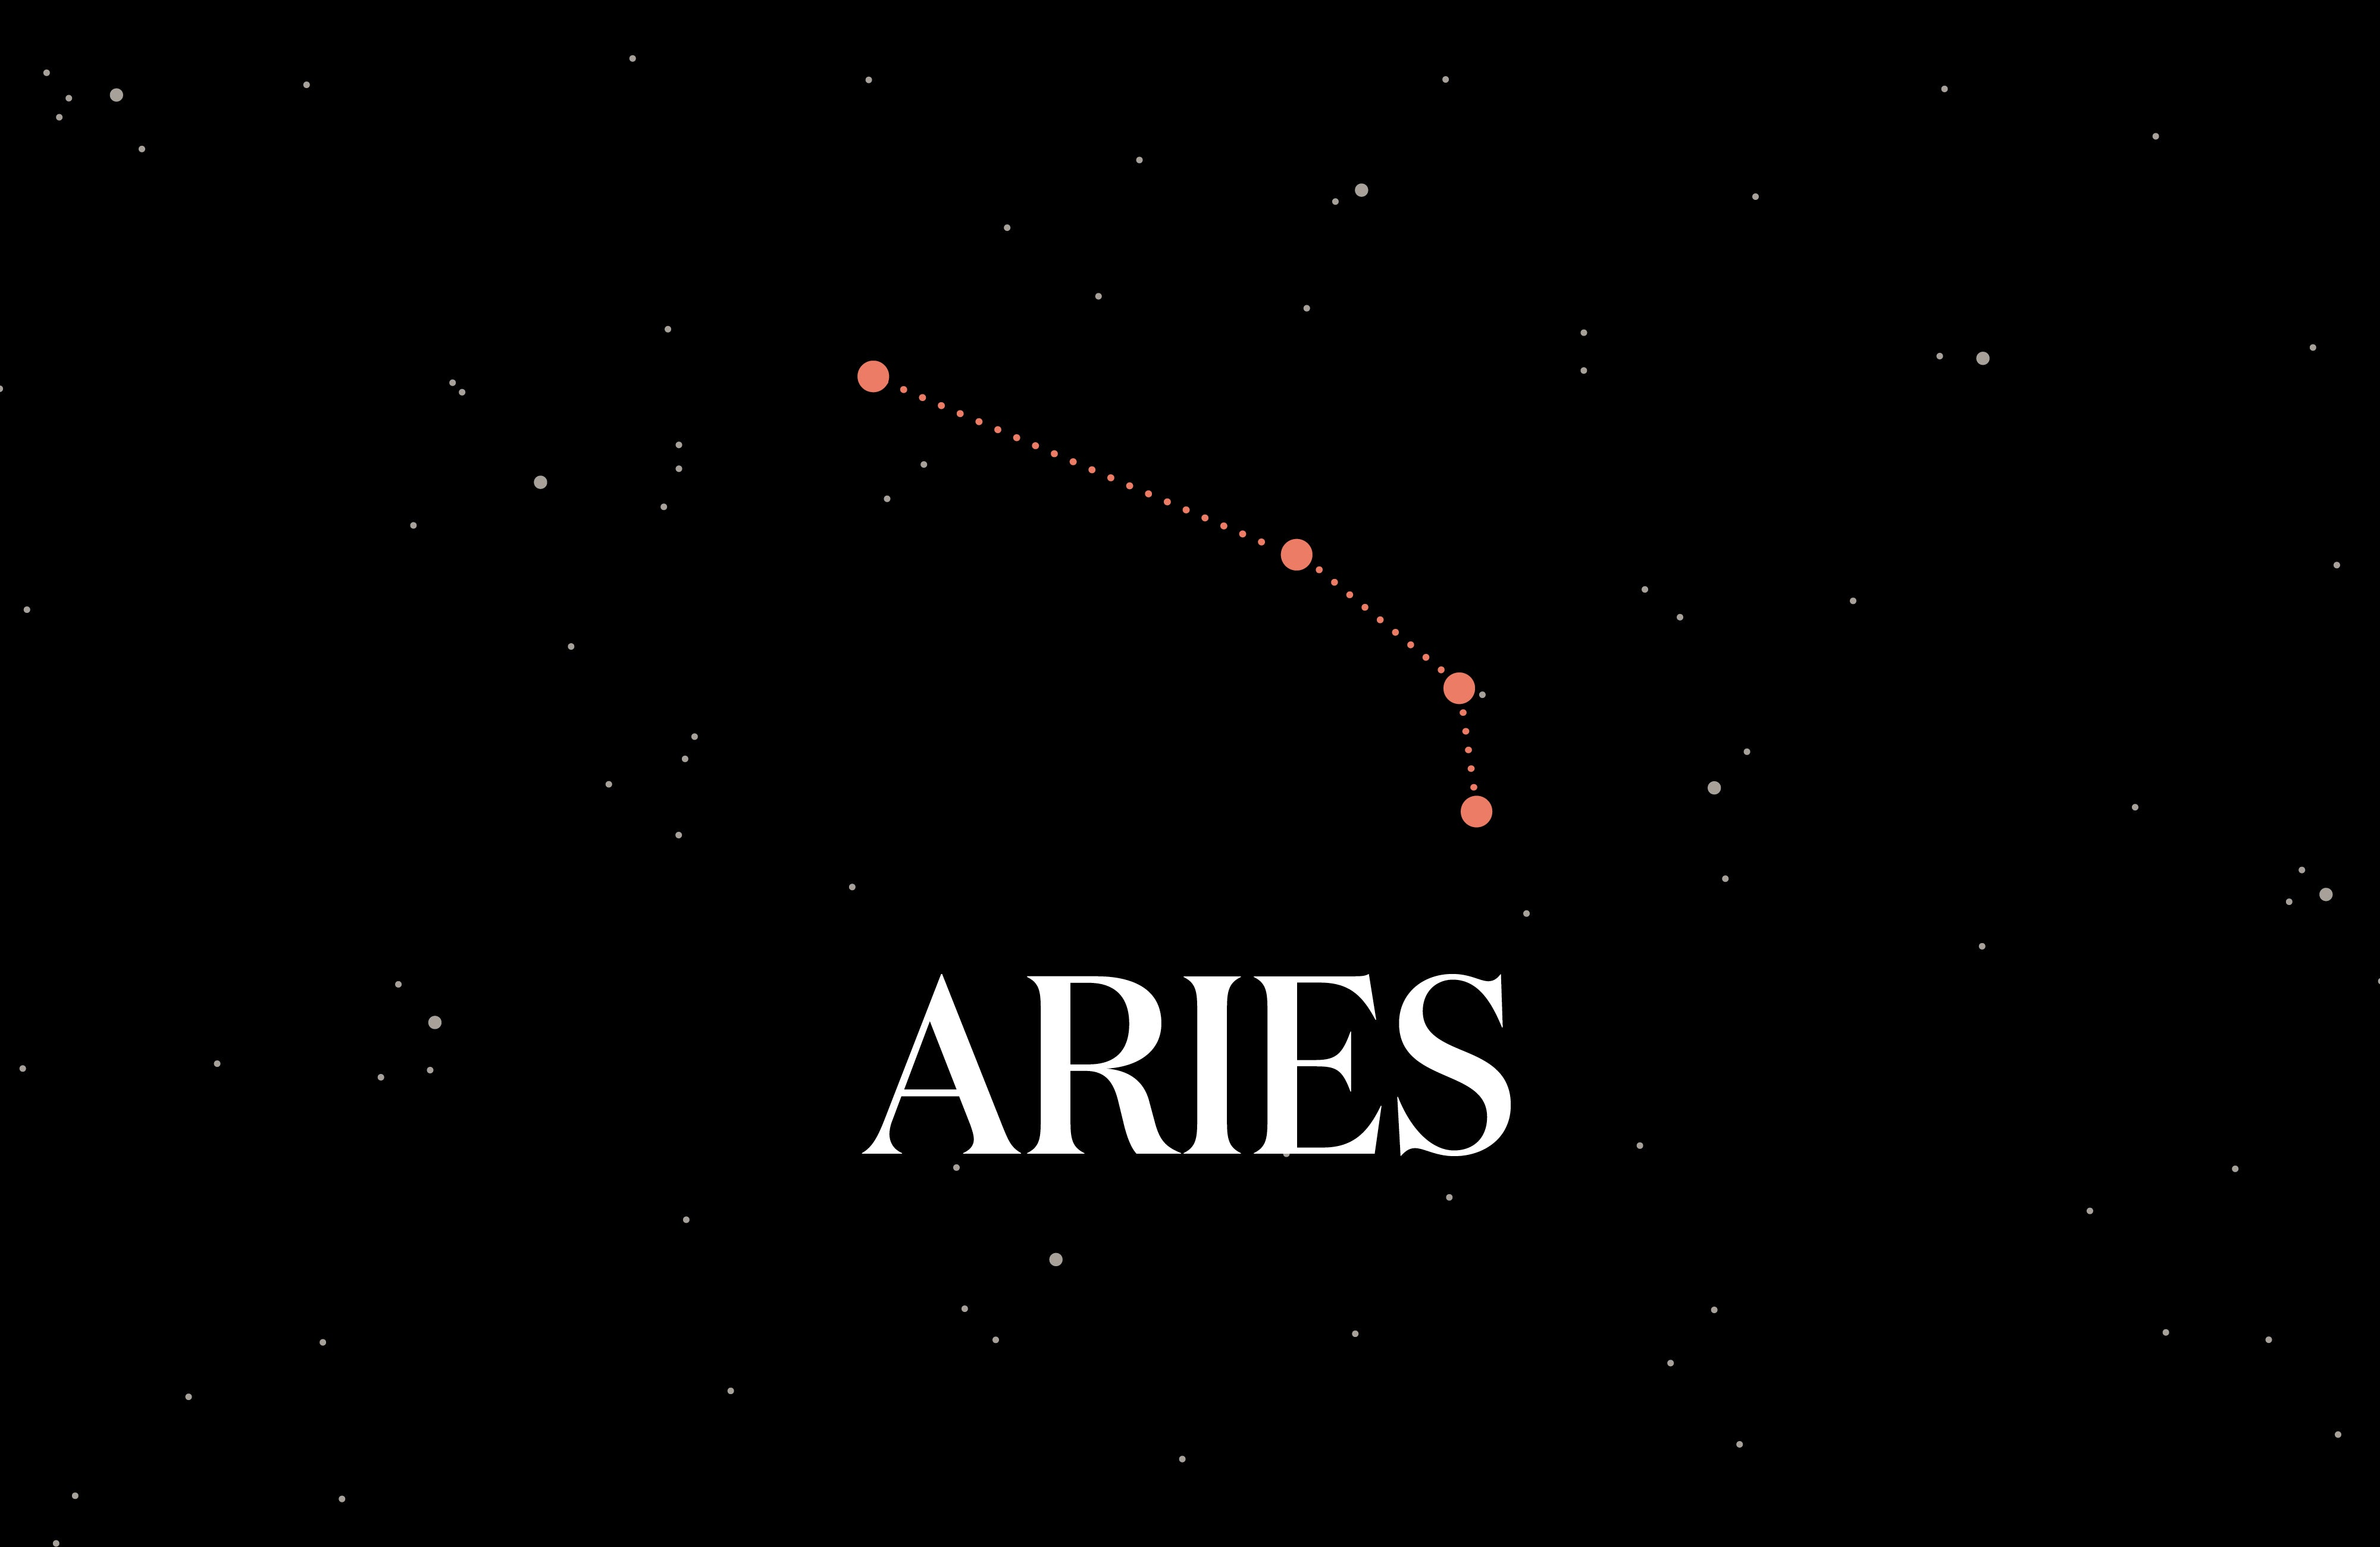 Graphic of the Aries constellation.